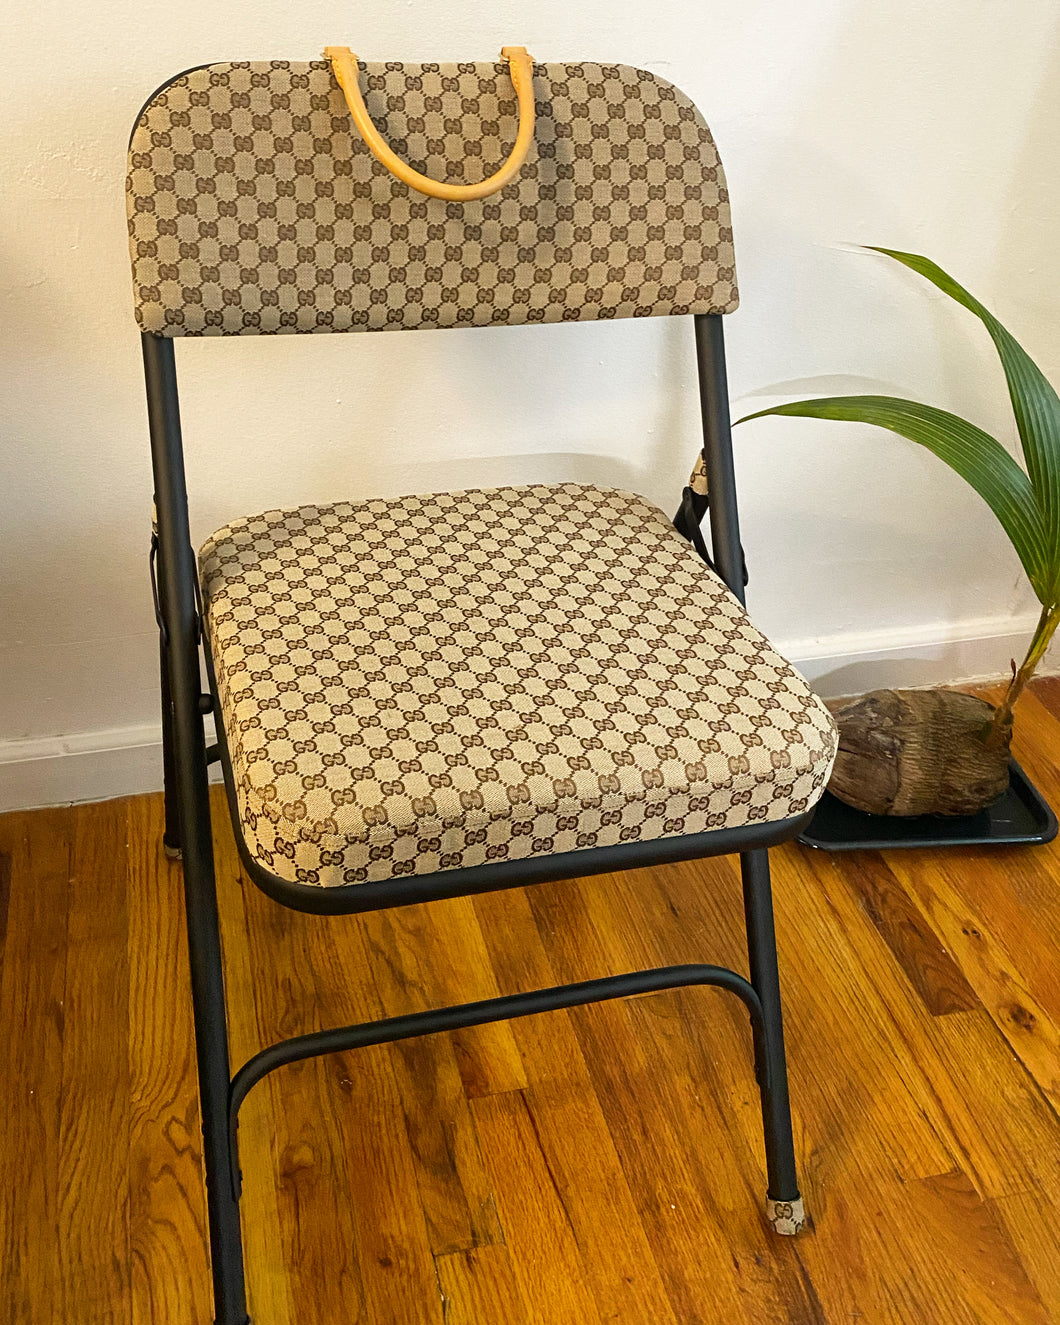 GG Monogram Folding Chair